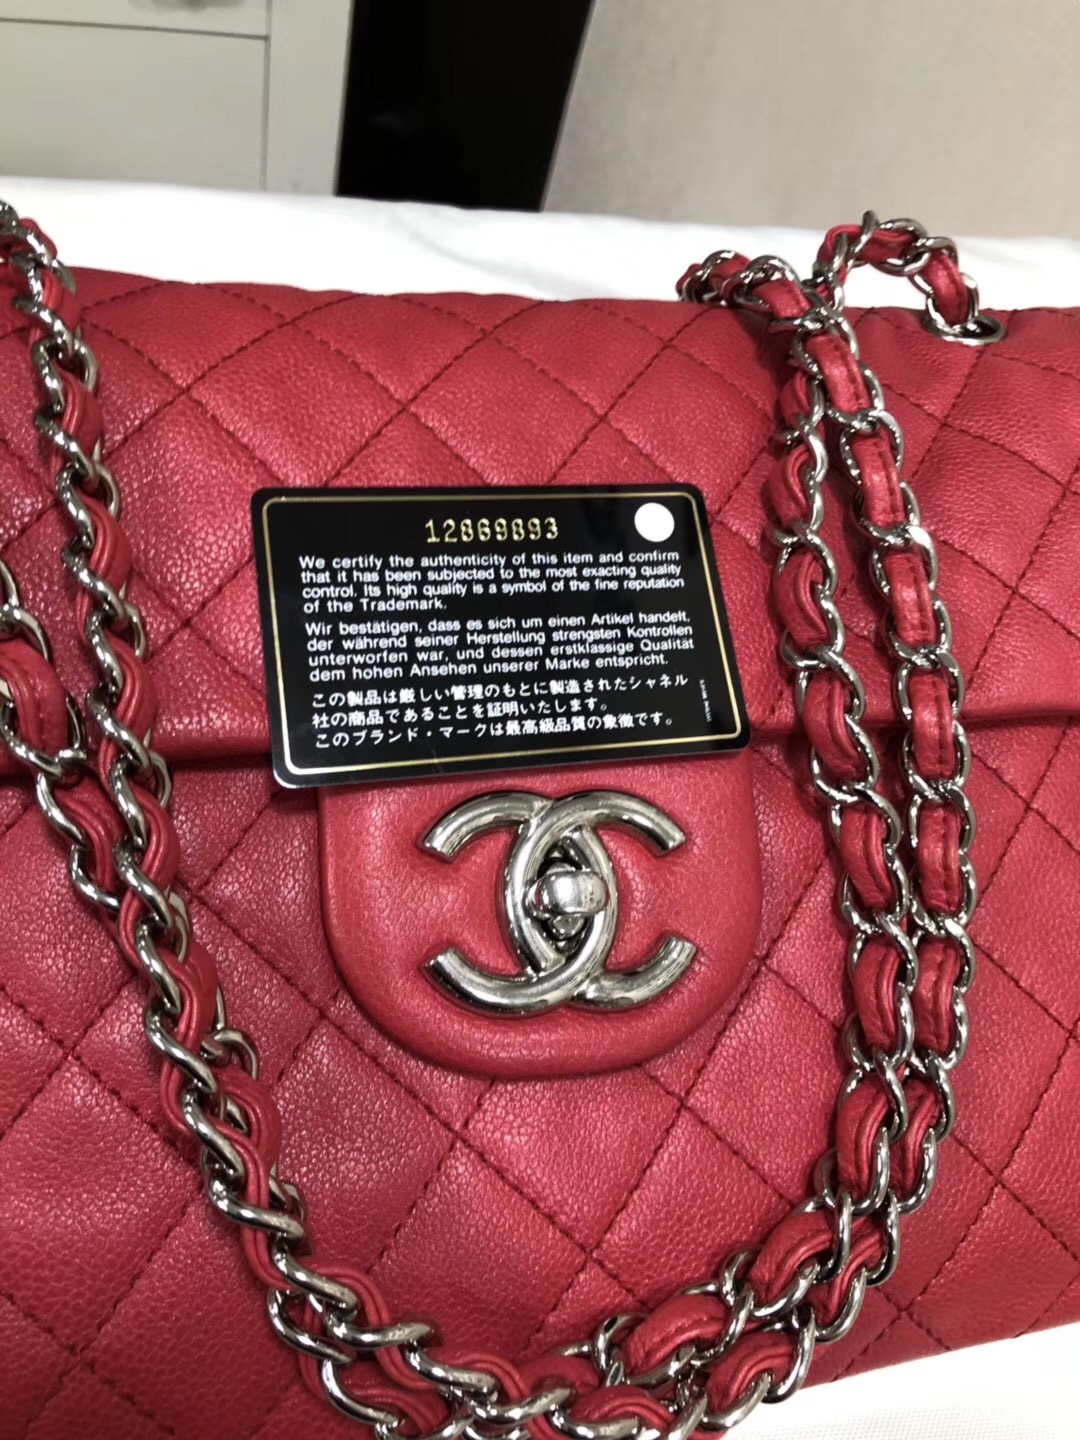 2f9093d8bd1ee5 AUTHENTIC CHANEL MAXI RED PINK QUILTED SOFT CAVIAR CLASSIC FLAP BAG ...